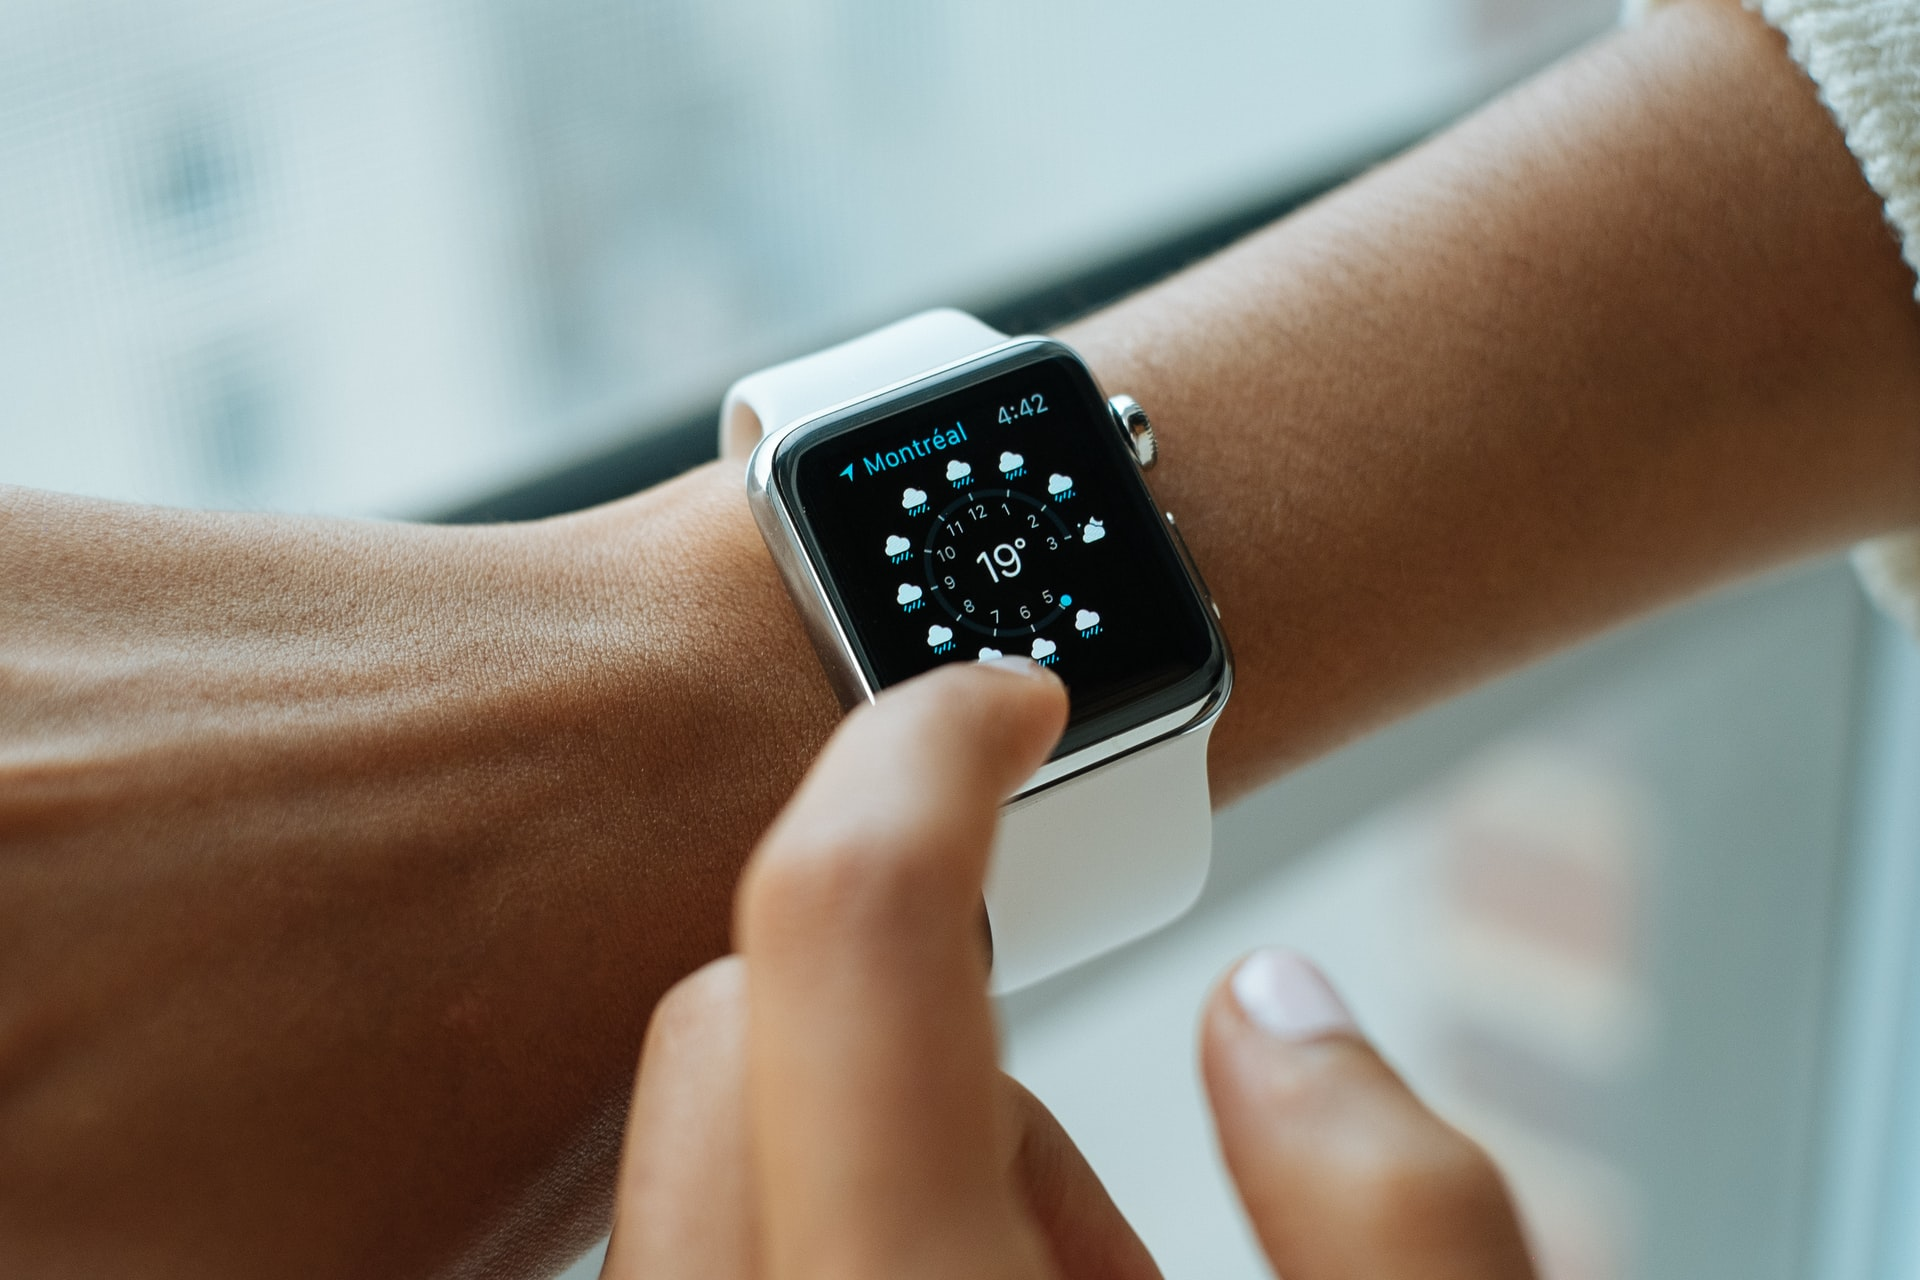 Why You Should Not Buy an Apple Watch from Vodafone?